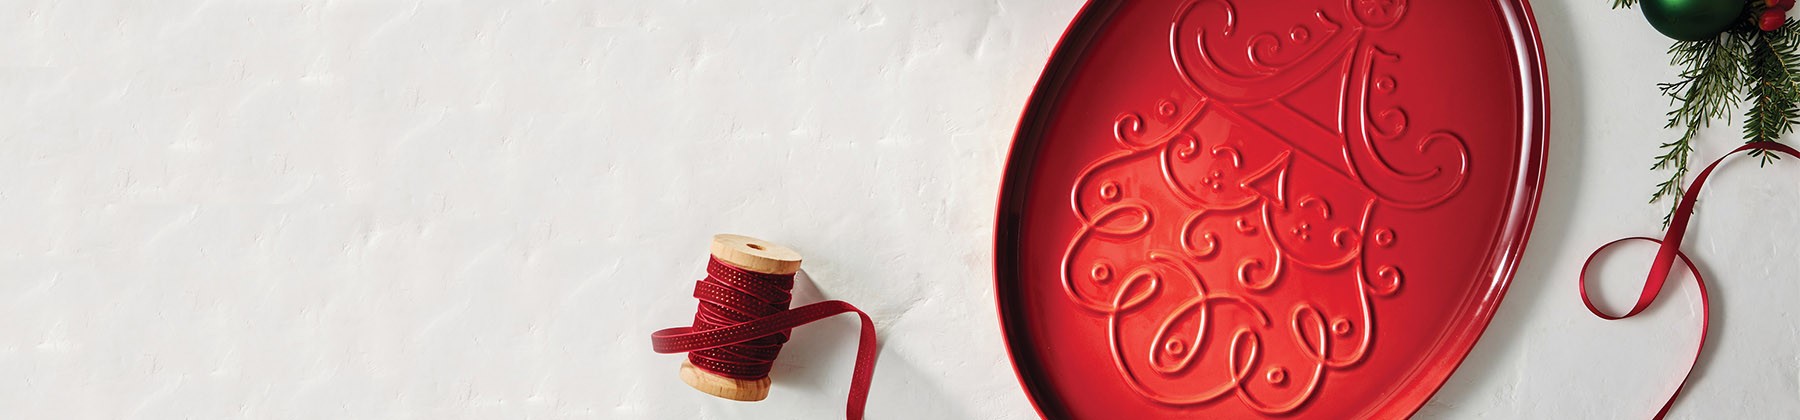 Photo of Le Creuset holiday santa cookie platter.